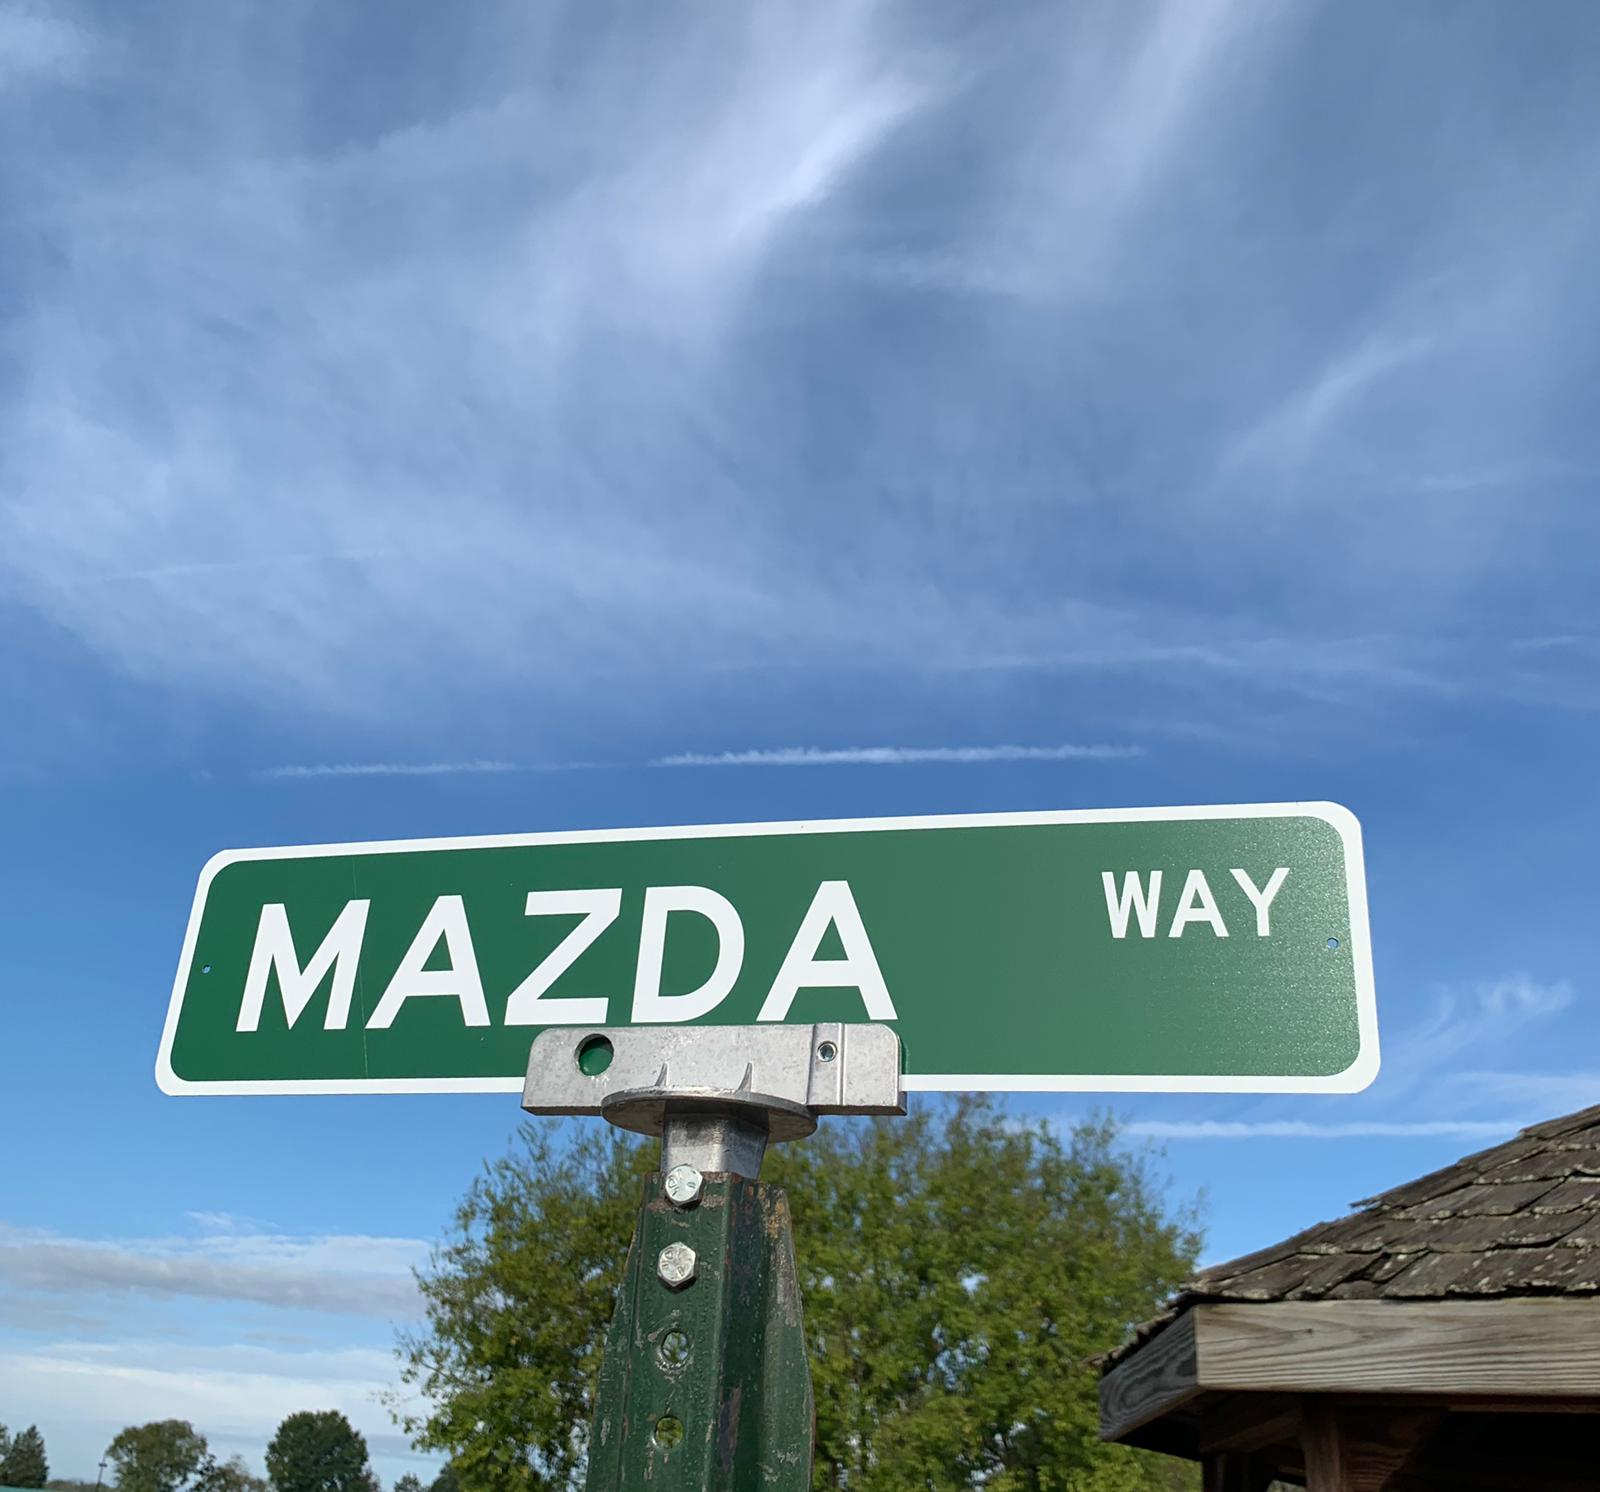 The Mazda paddock even got their own street sign  at the Runoffs this year!